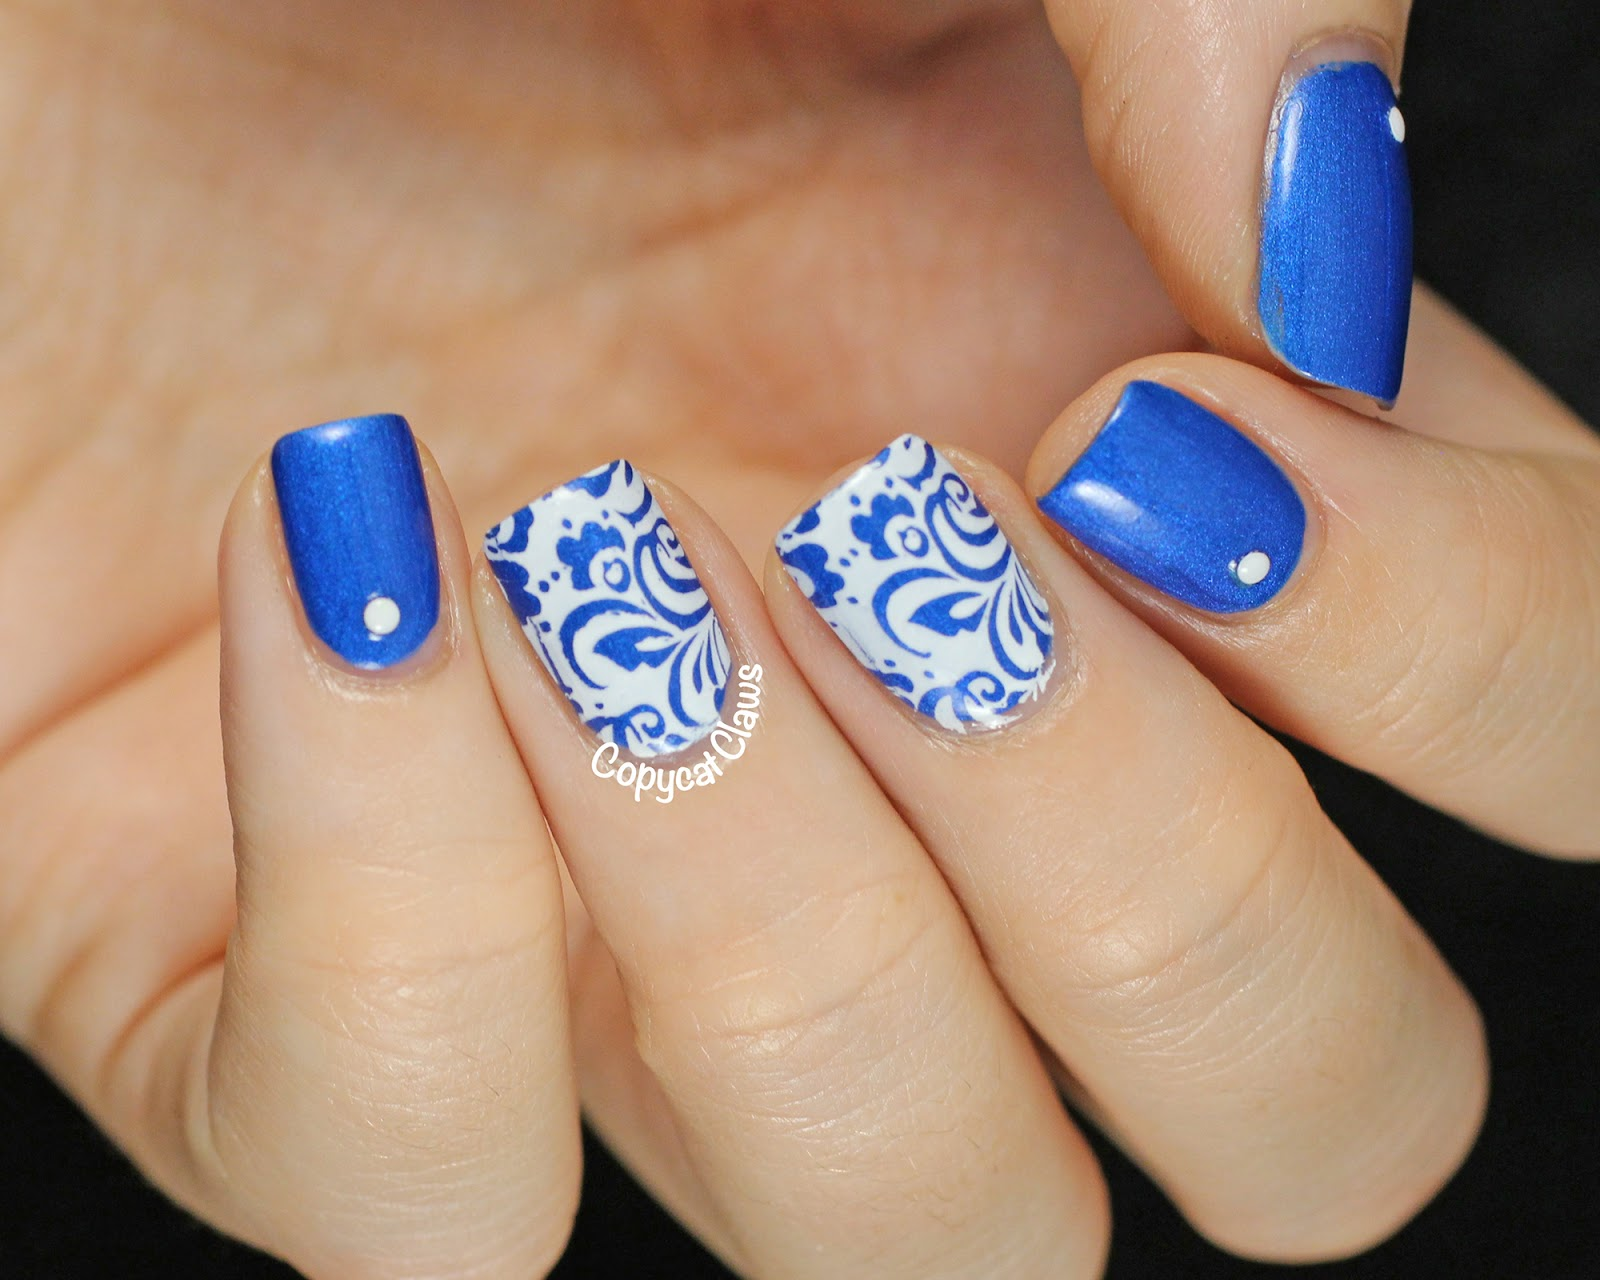 Copycat Claws: Blue & White Porcelain Nail Stamping ...